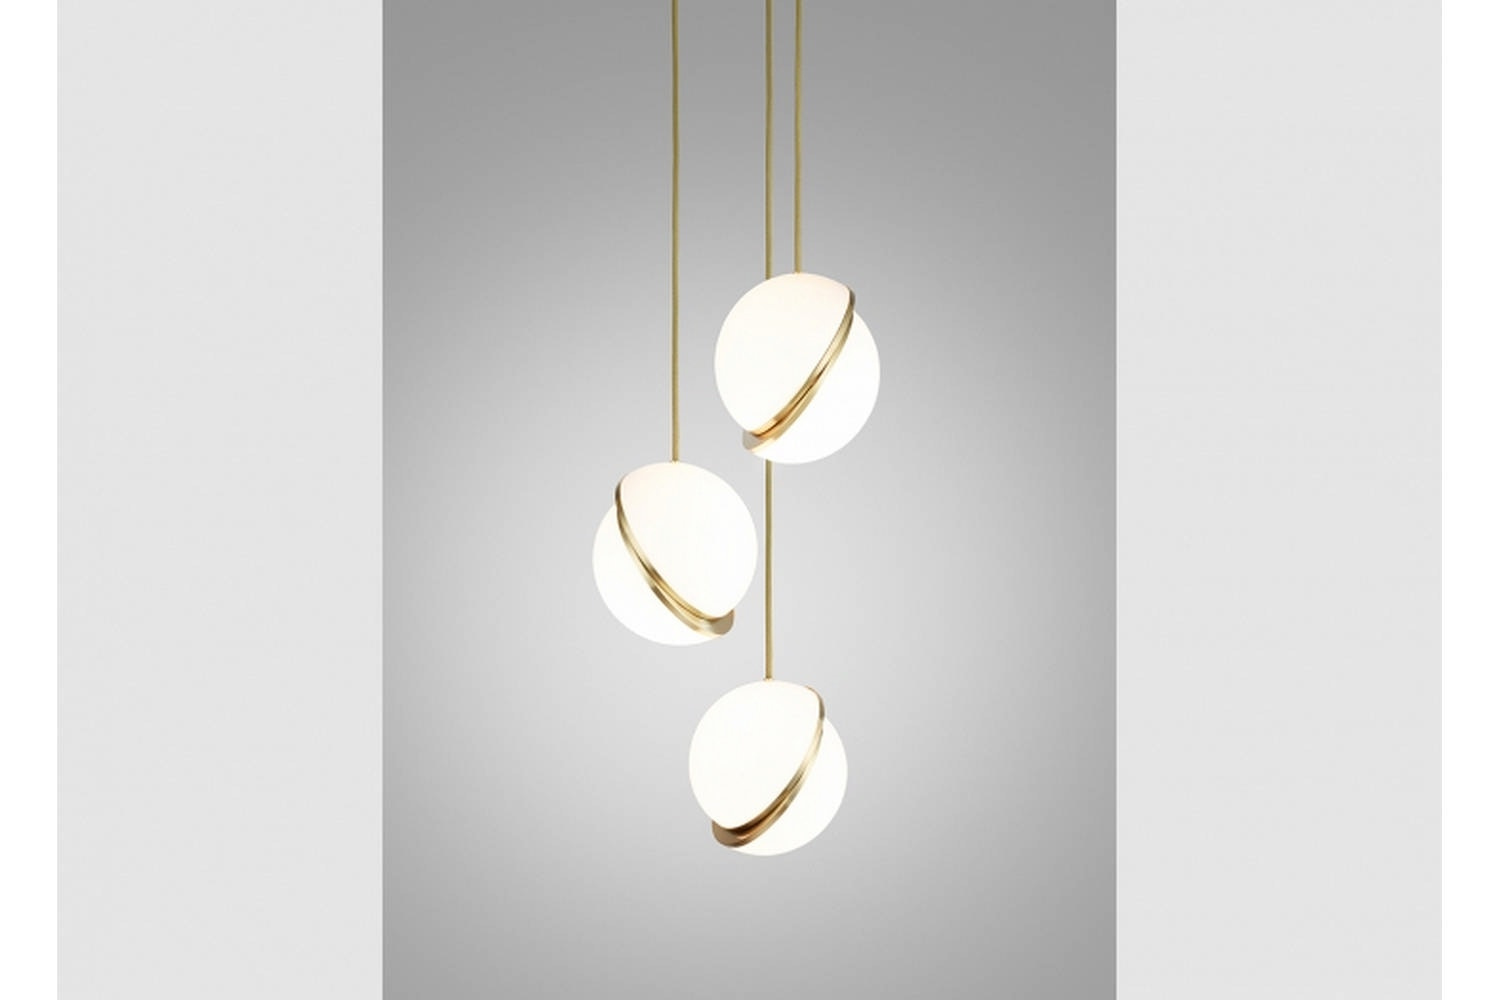 Mini Crescent Chandelier 3 Piece by Lee Broom